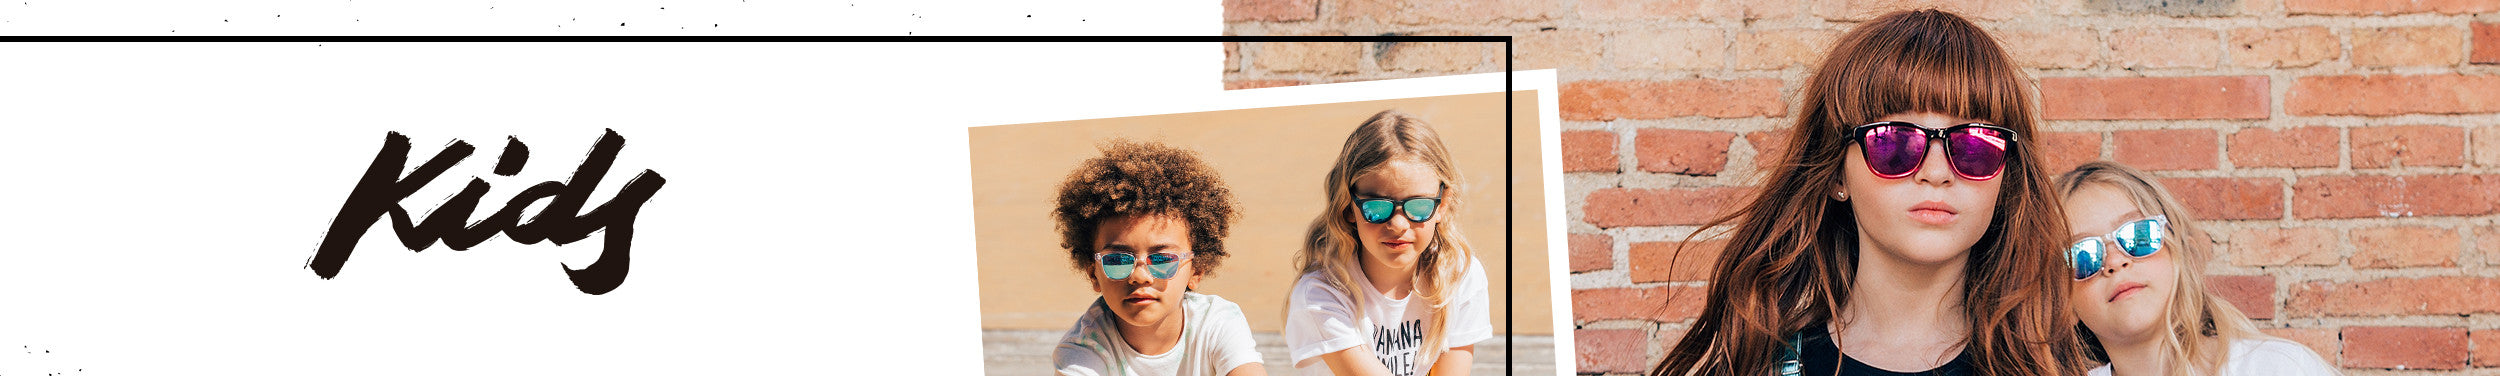 Coleccion Hawkers kids gafas de sol sunglasses